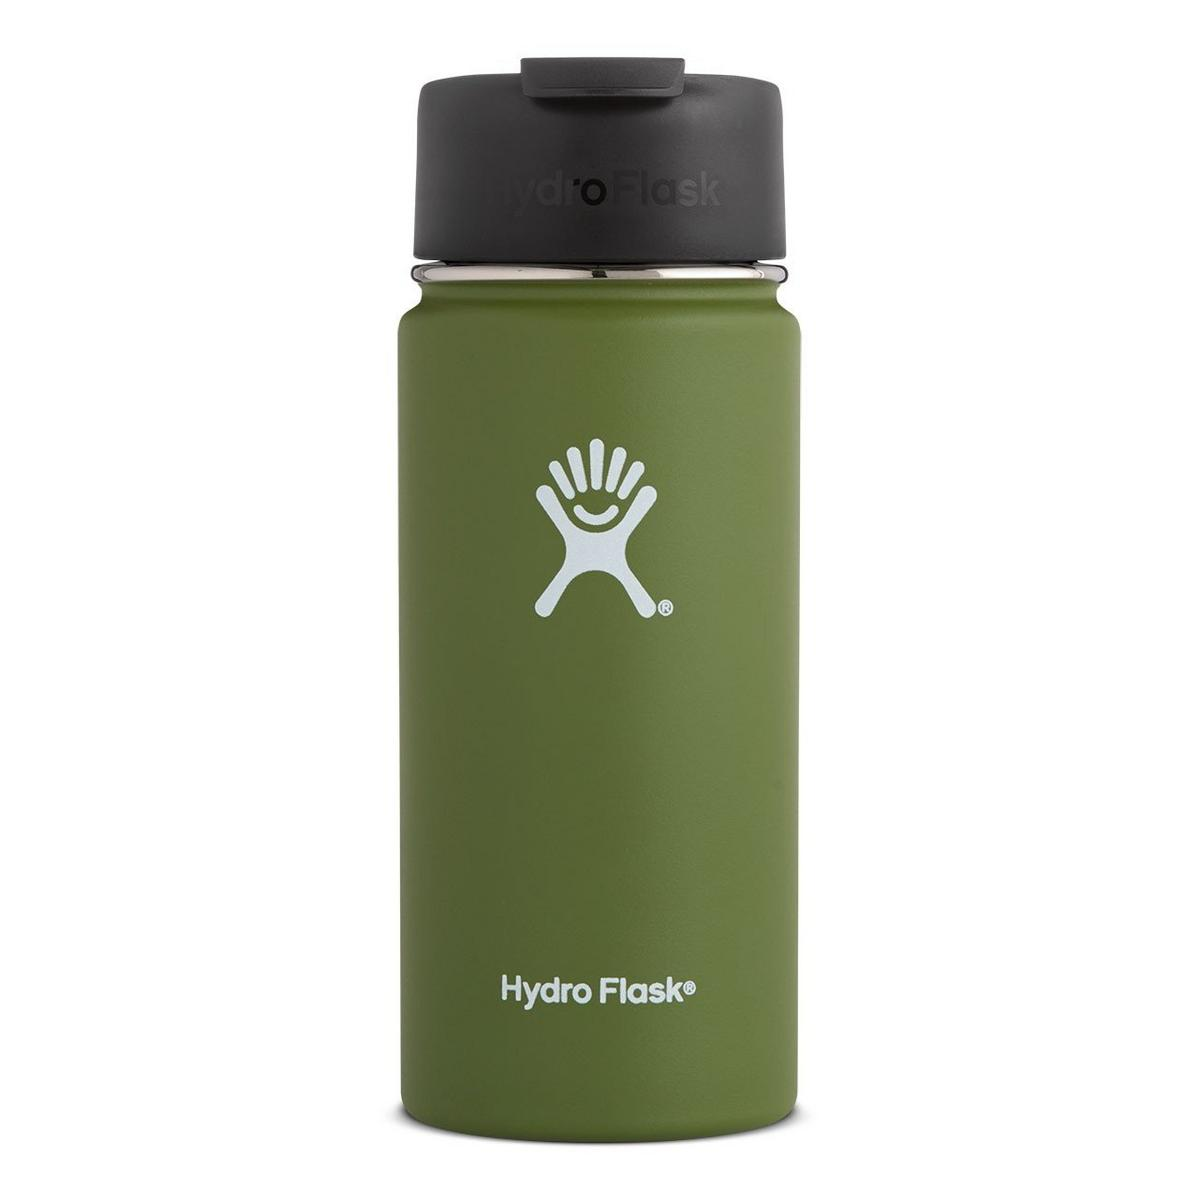 Hydro Flask 16oz Wide Mouth Insulated Coffee Cup